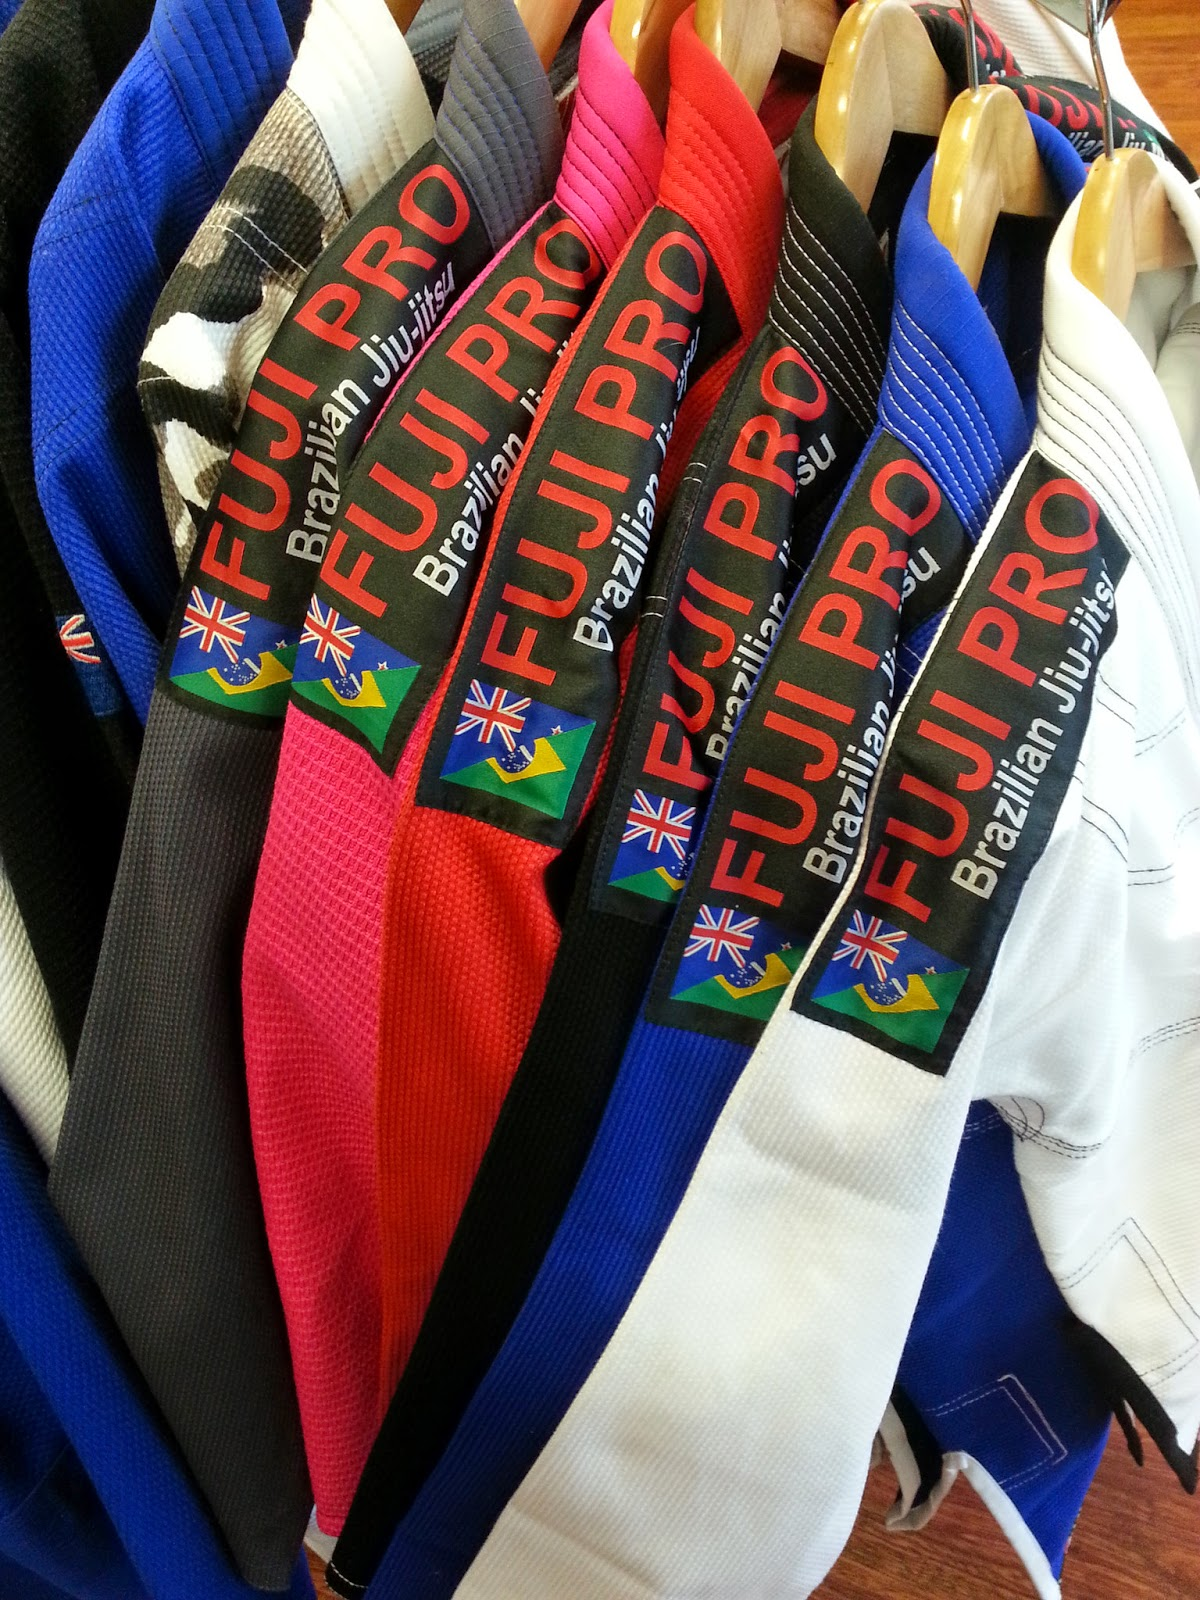 http://fujimae.co.nz/collections/brazilian-jiu-jitsu-bjj